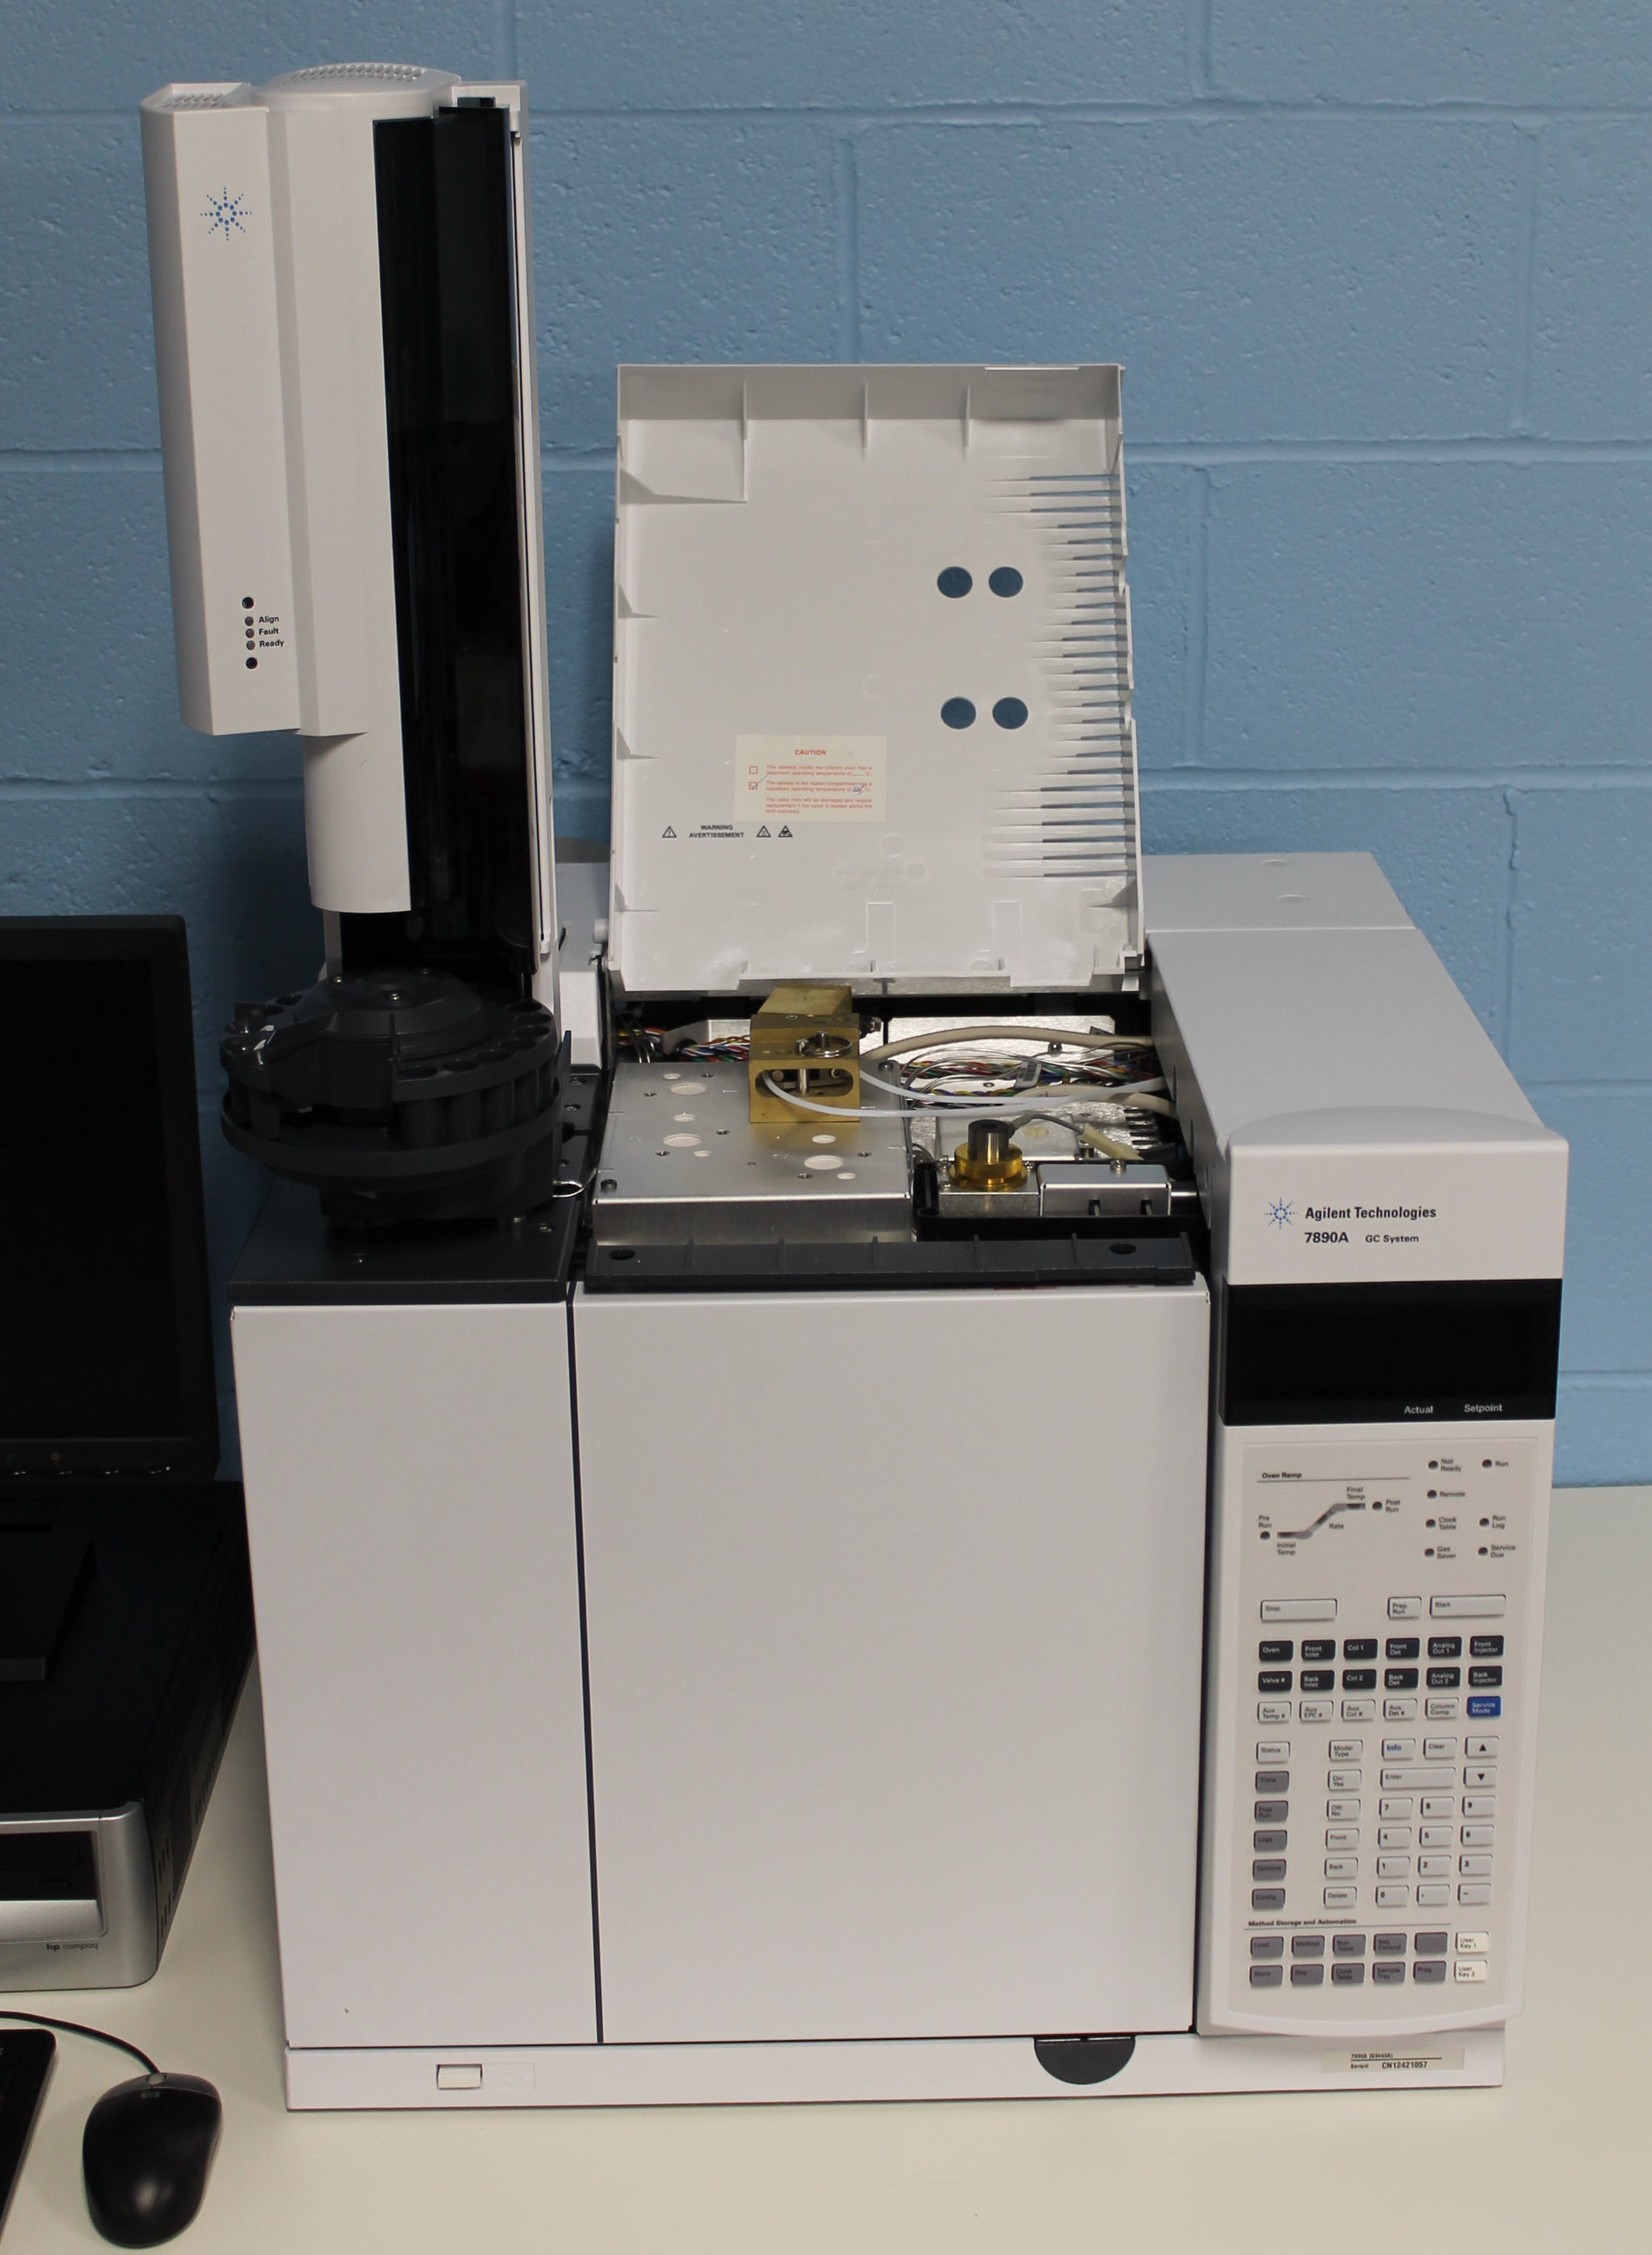 Refurbished Agilent Technologies 7890A (G3440A) GC System